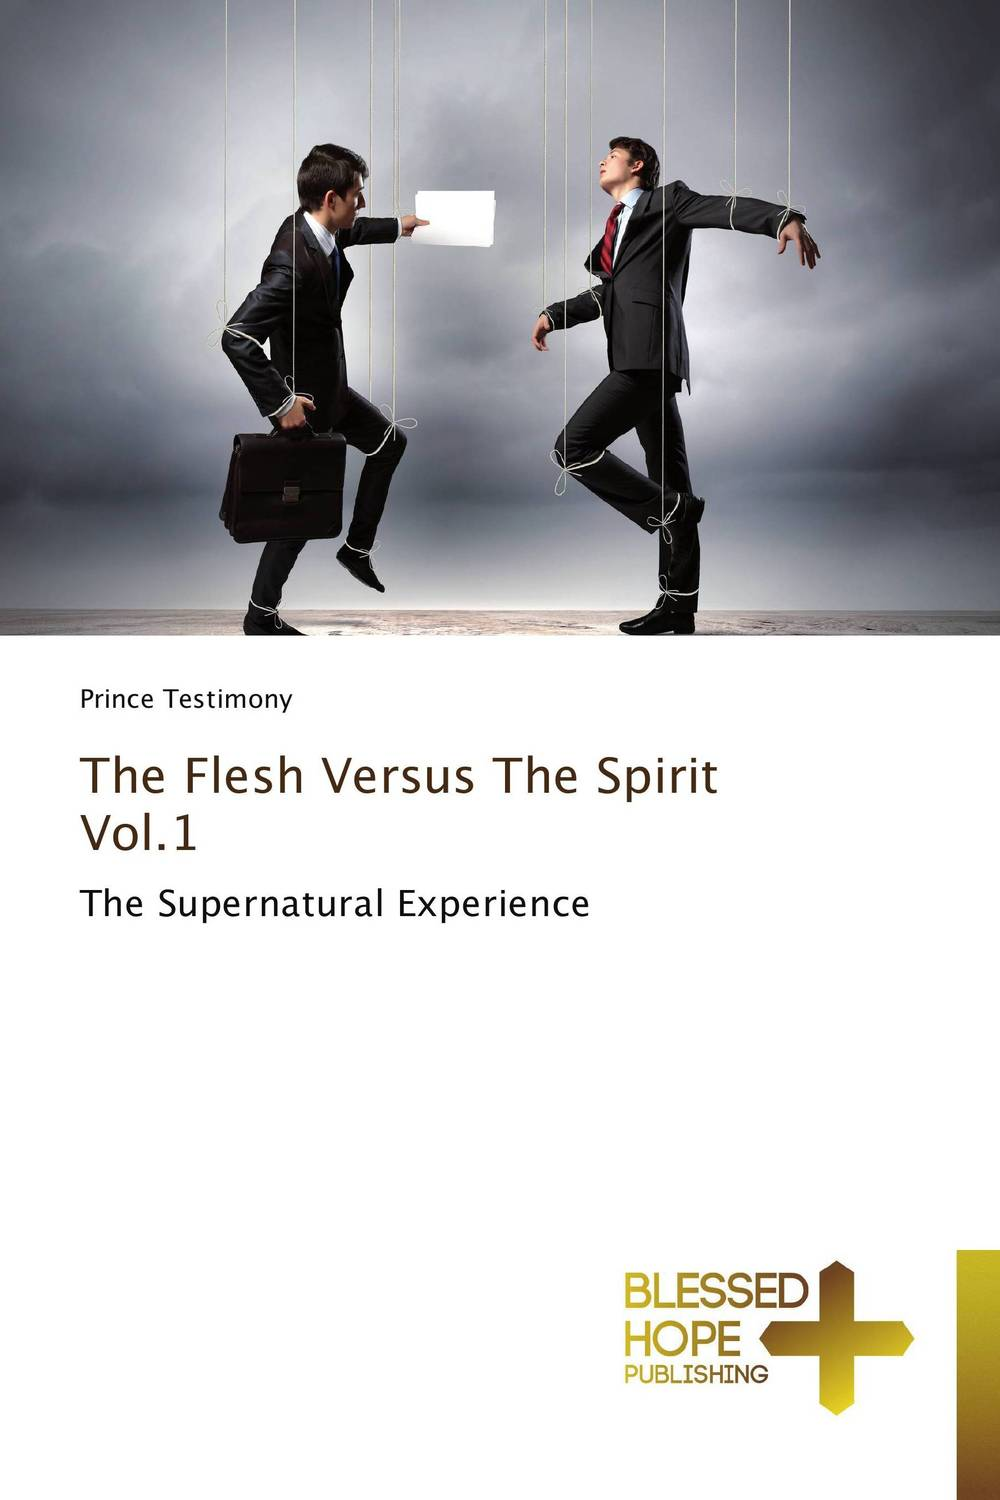 The Flesh Versus The Spirit Vol.1